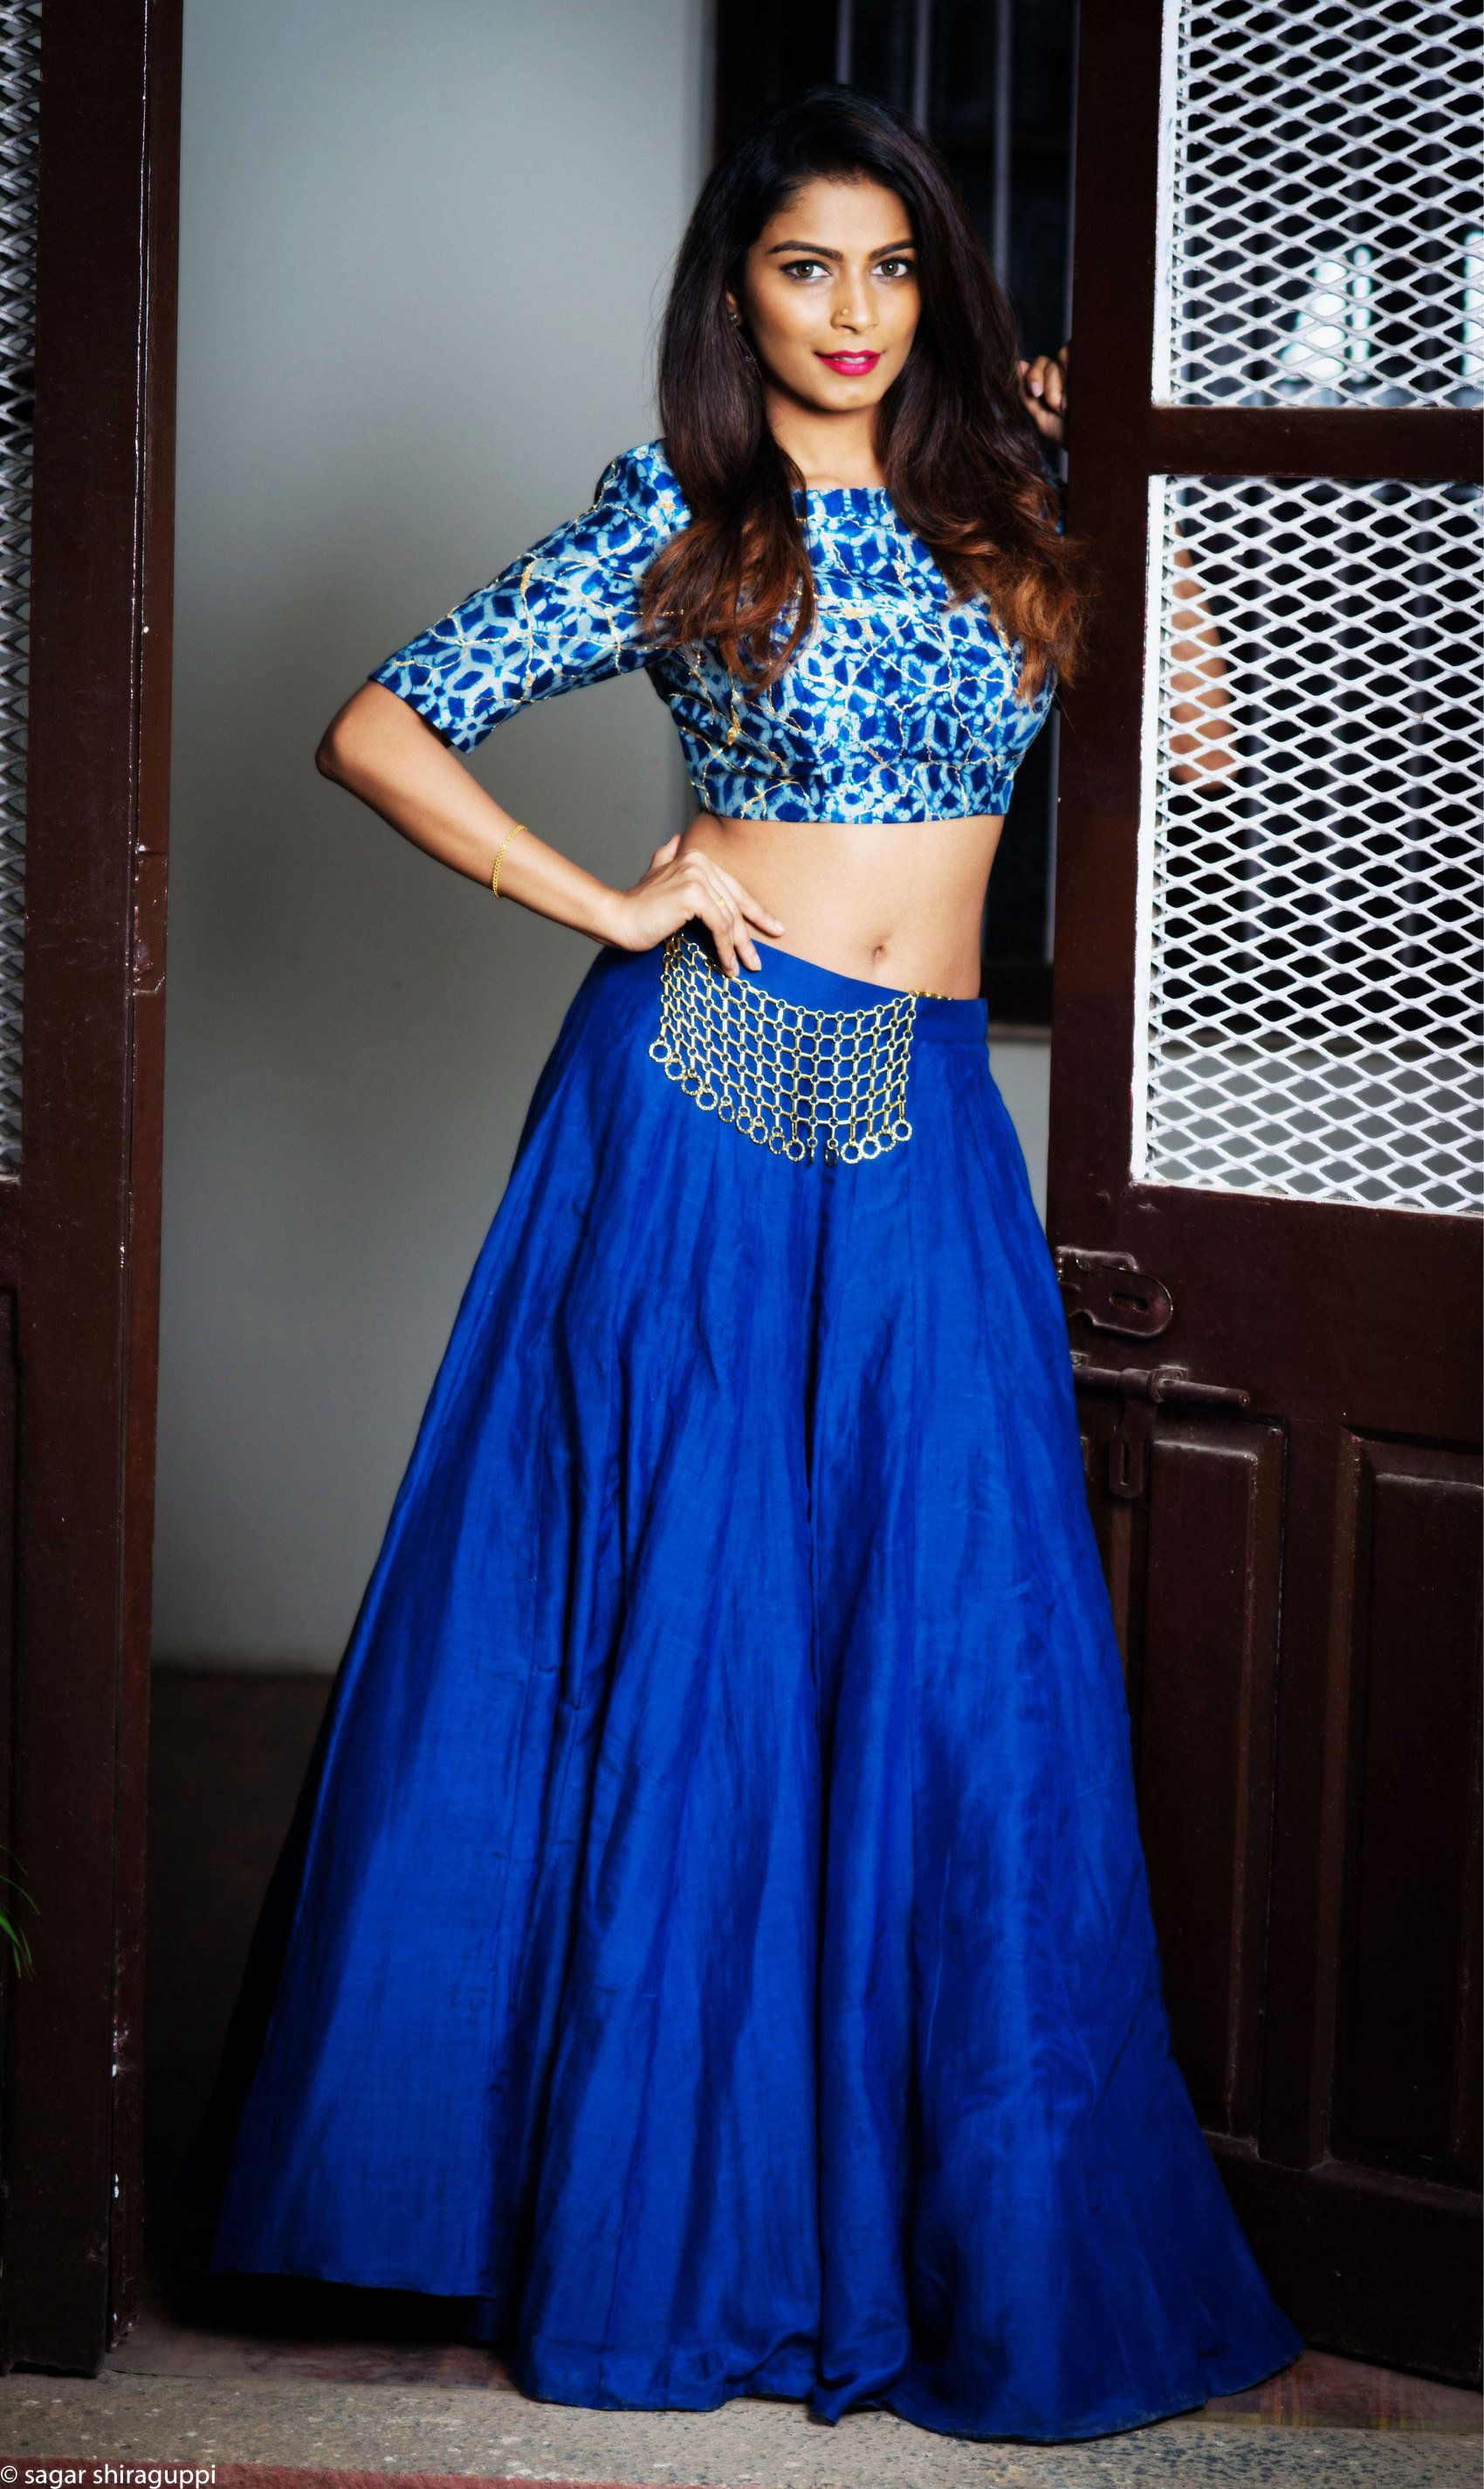 bd2d28f515bb0 Pure Silk Designer Lehanga with hand embroidered blouse Crop Top and Maxi  Skirt Long Skirt with Choli. This Designer Indigo Blouse fabric is crafted  using ...